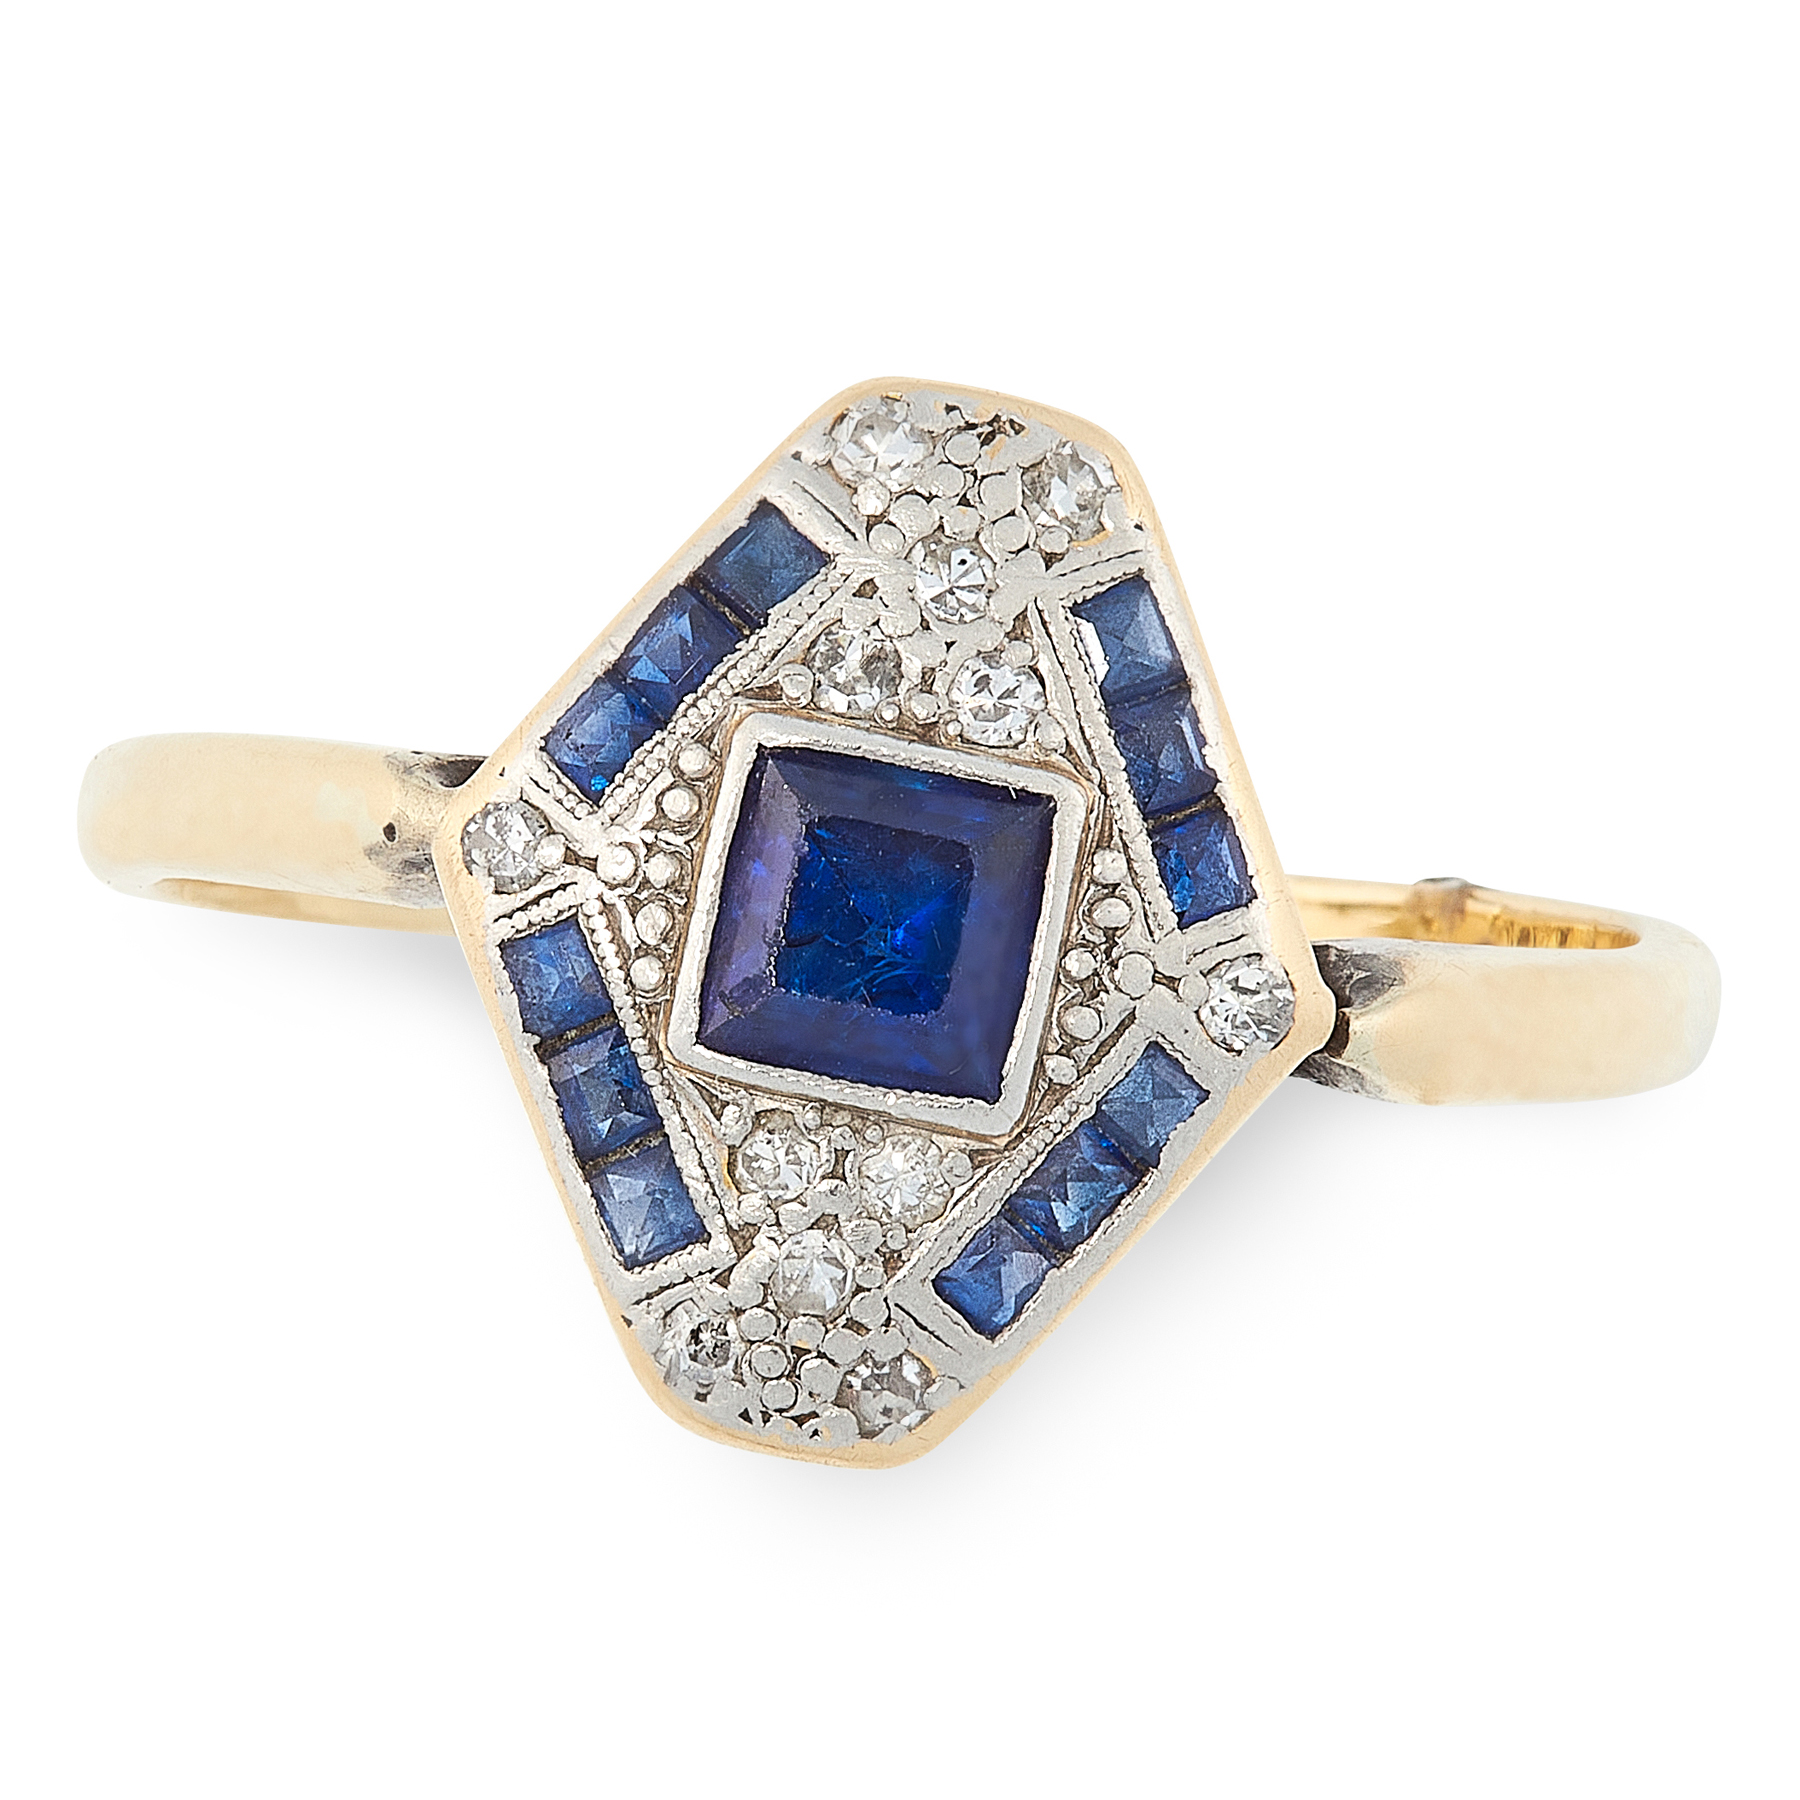 AN ART DECO SAPPHIRE AND DIAMOND RING in 18ct yellow gold and platinum, the hexagonal face set